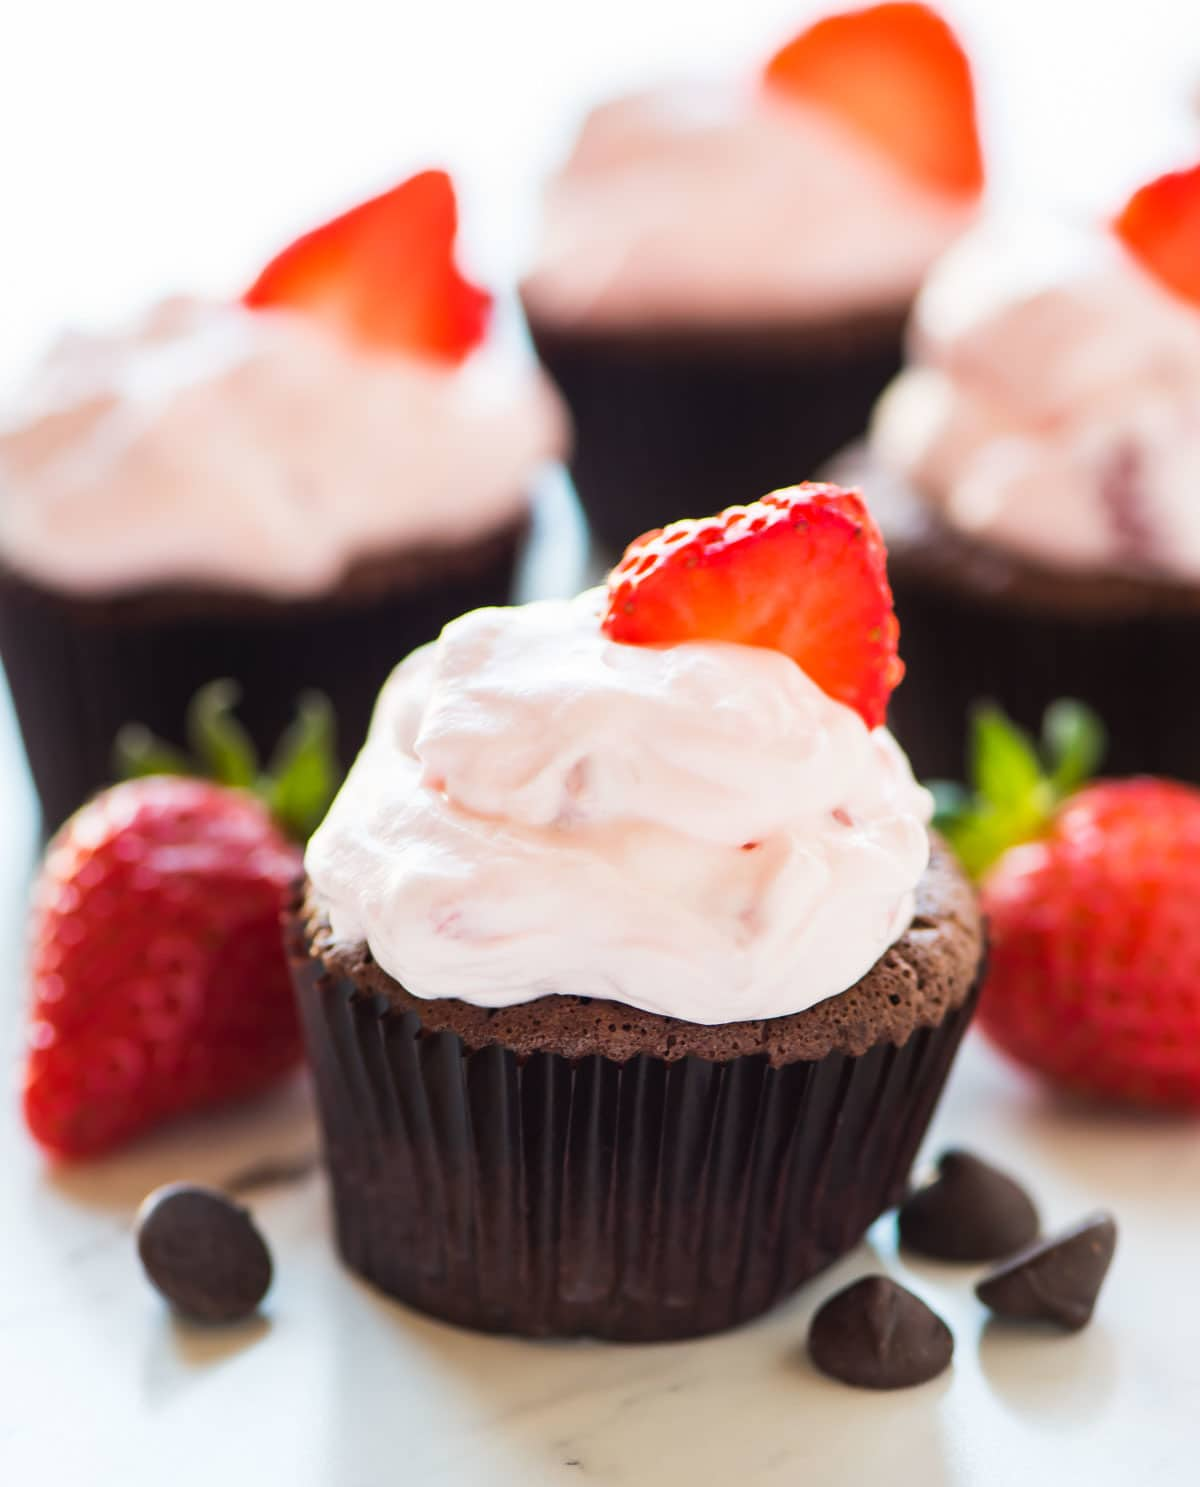 Easy Chocolate Mousse Cupcakes with Whipped Fresh Strawberry Cream Cheese Frosting. Rich, silky, and gluten free! Recipe at wellplated.com | @wellplated